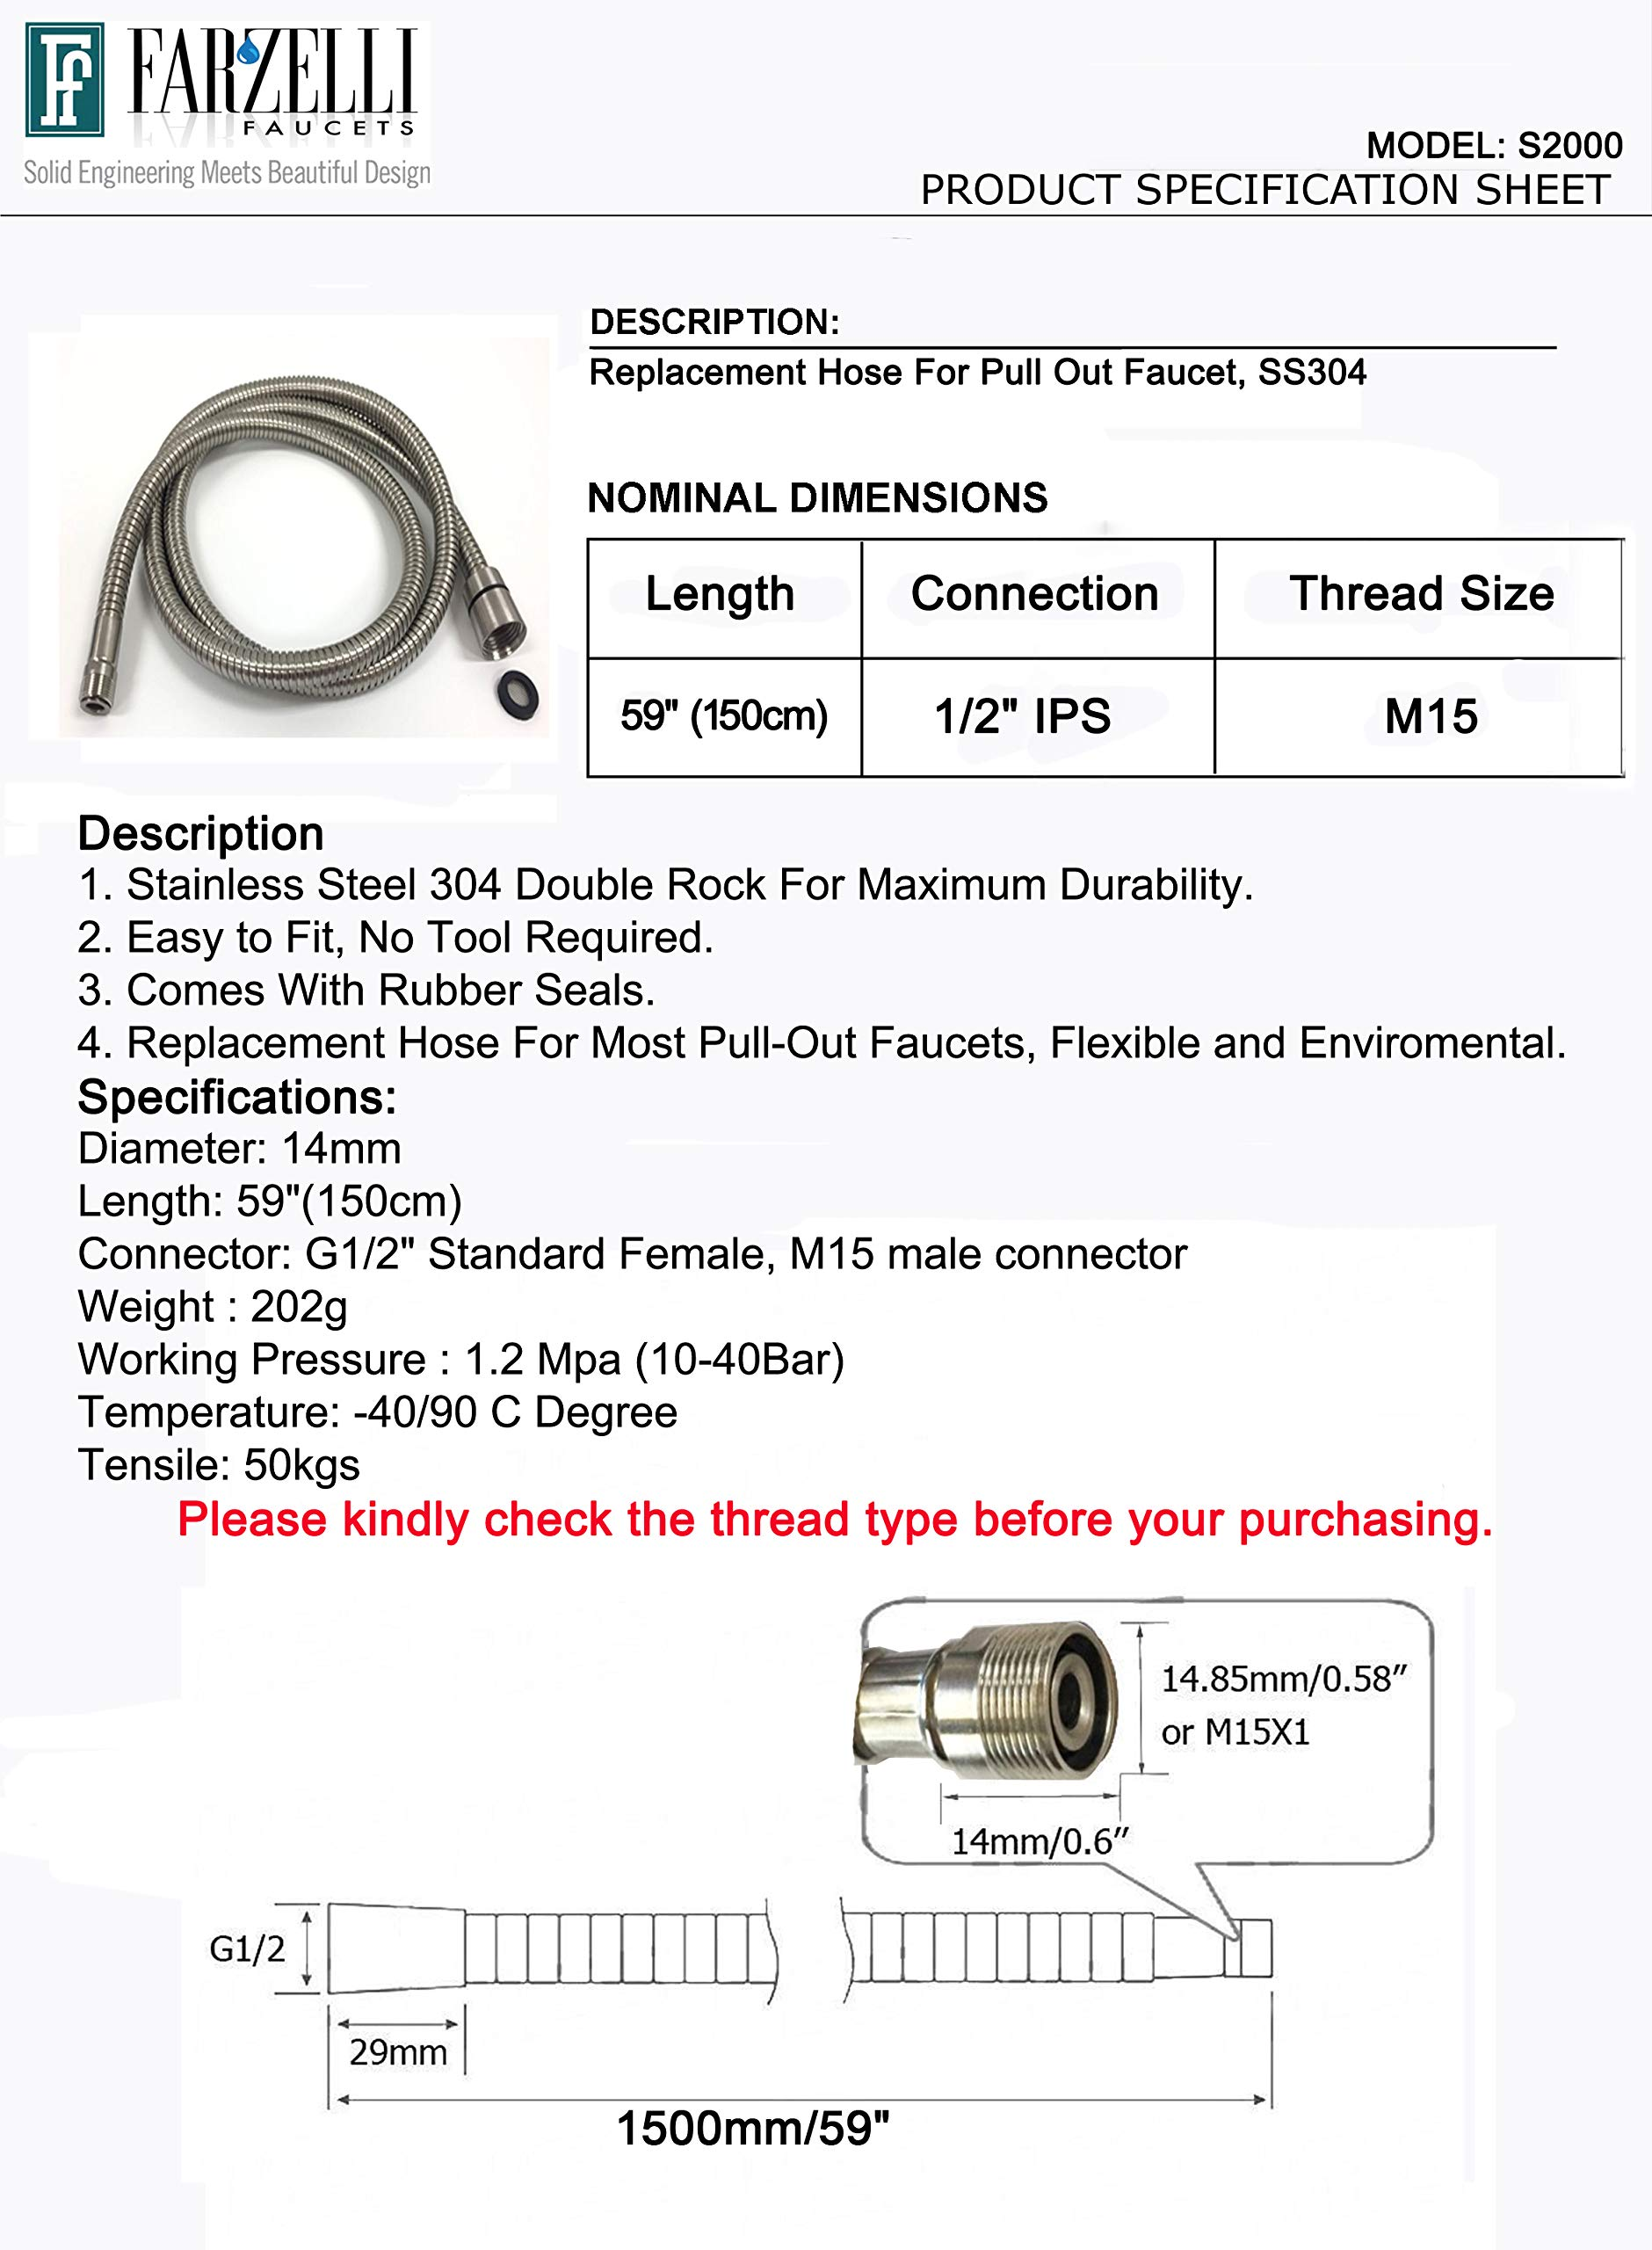 Kitchen Faucet Replacement Hose Stainless Steel S2000 by Farzelli Faucets